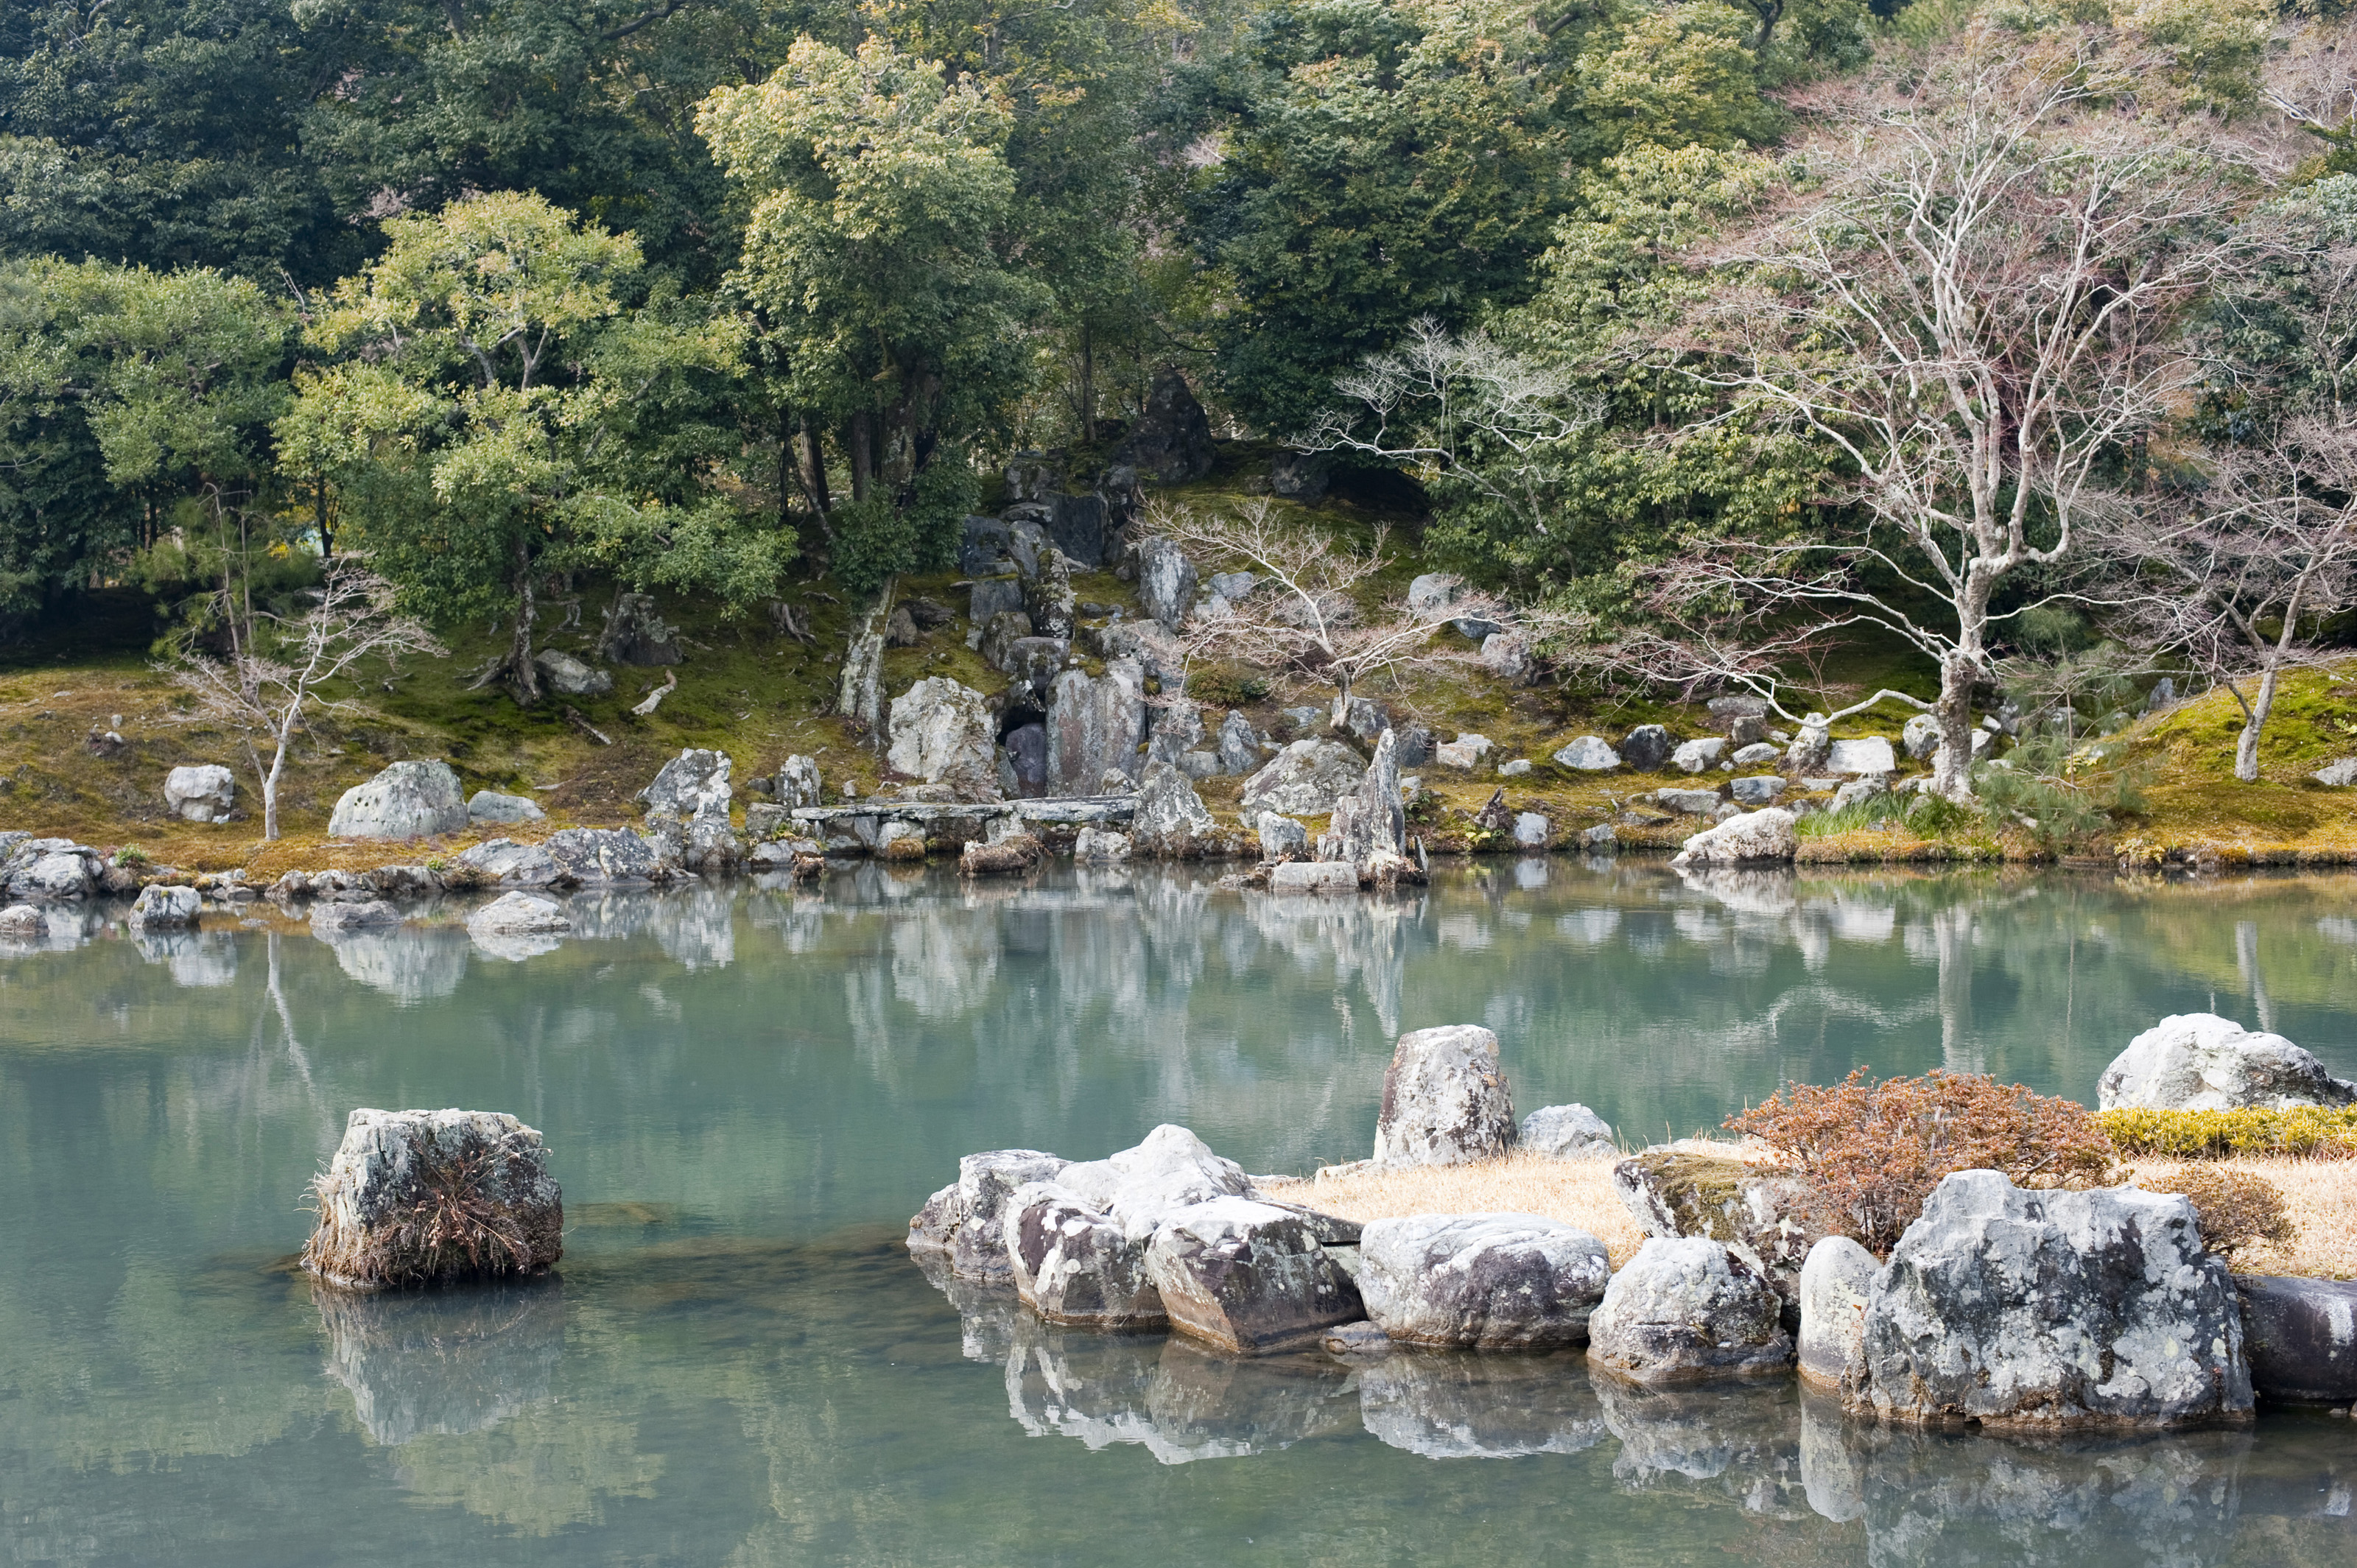 Japanese Water Plants